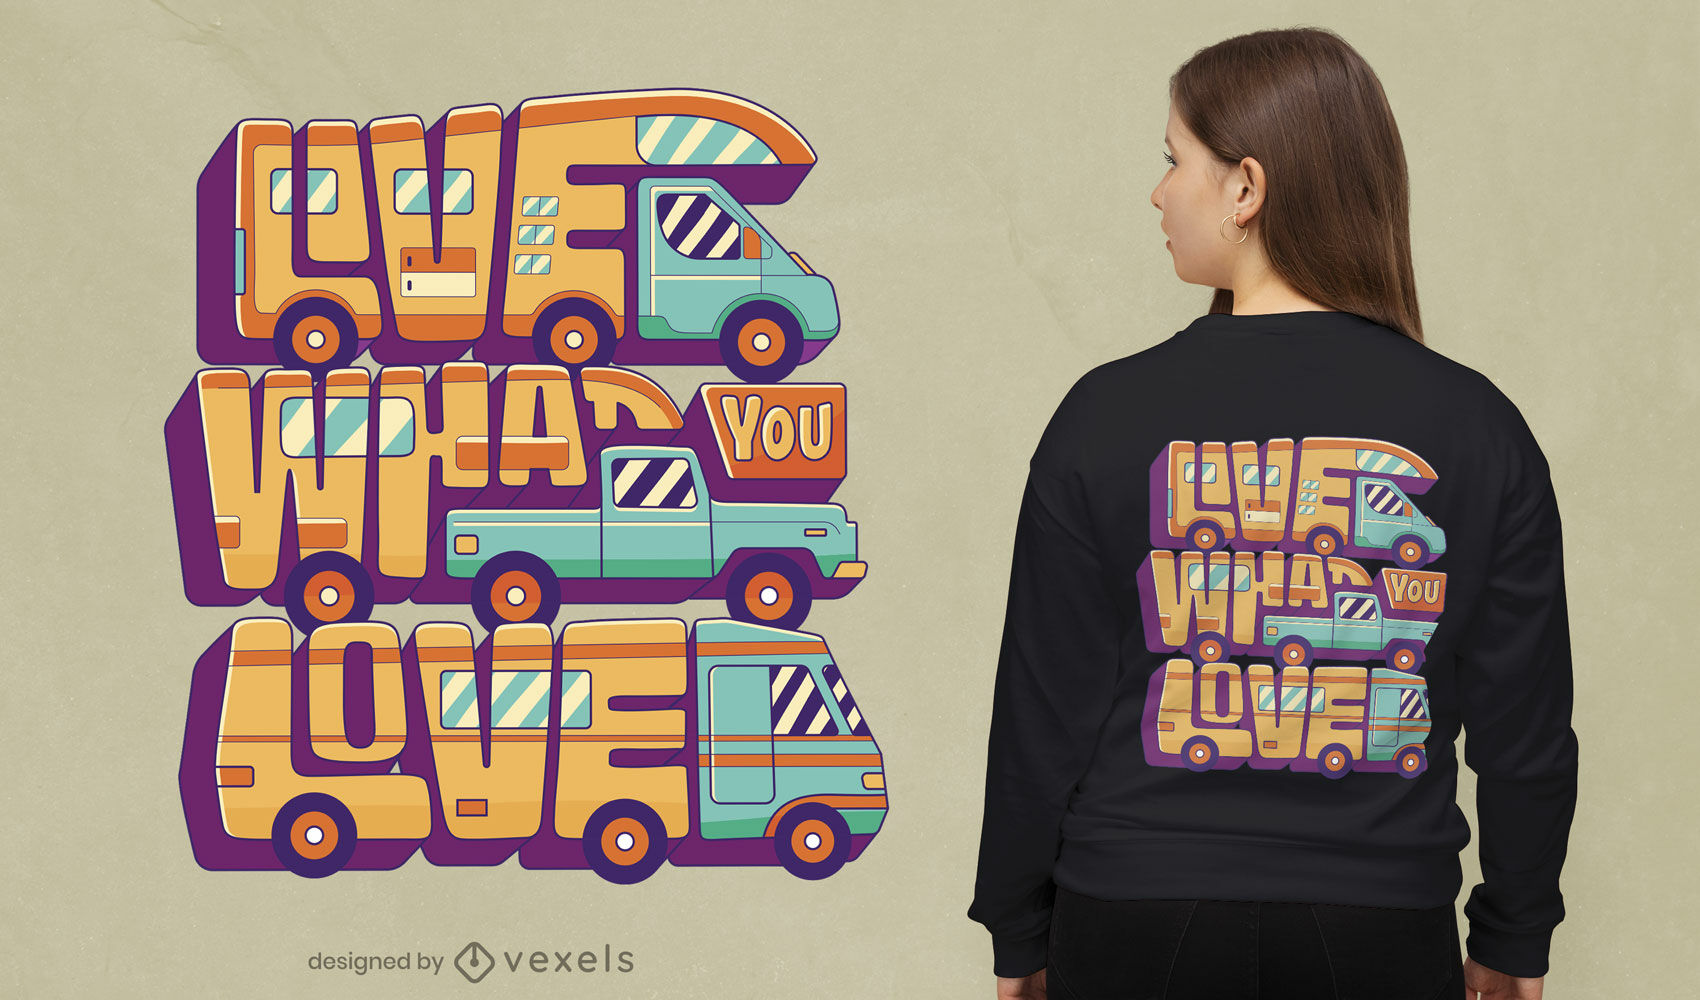 Camping truck love quote t-shirt design